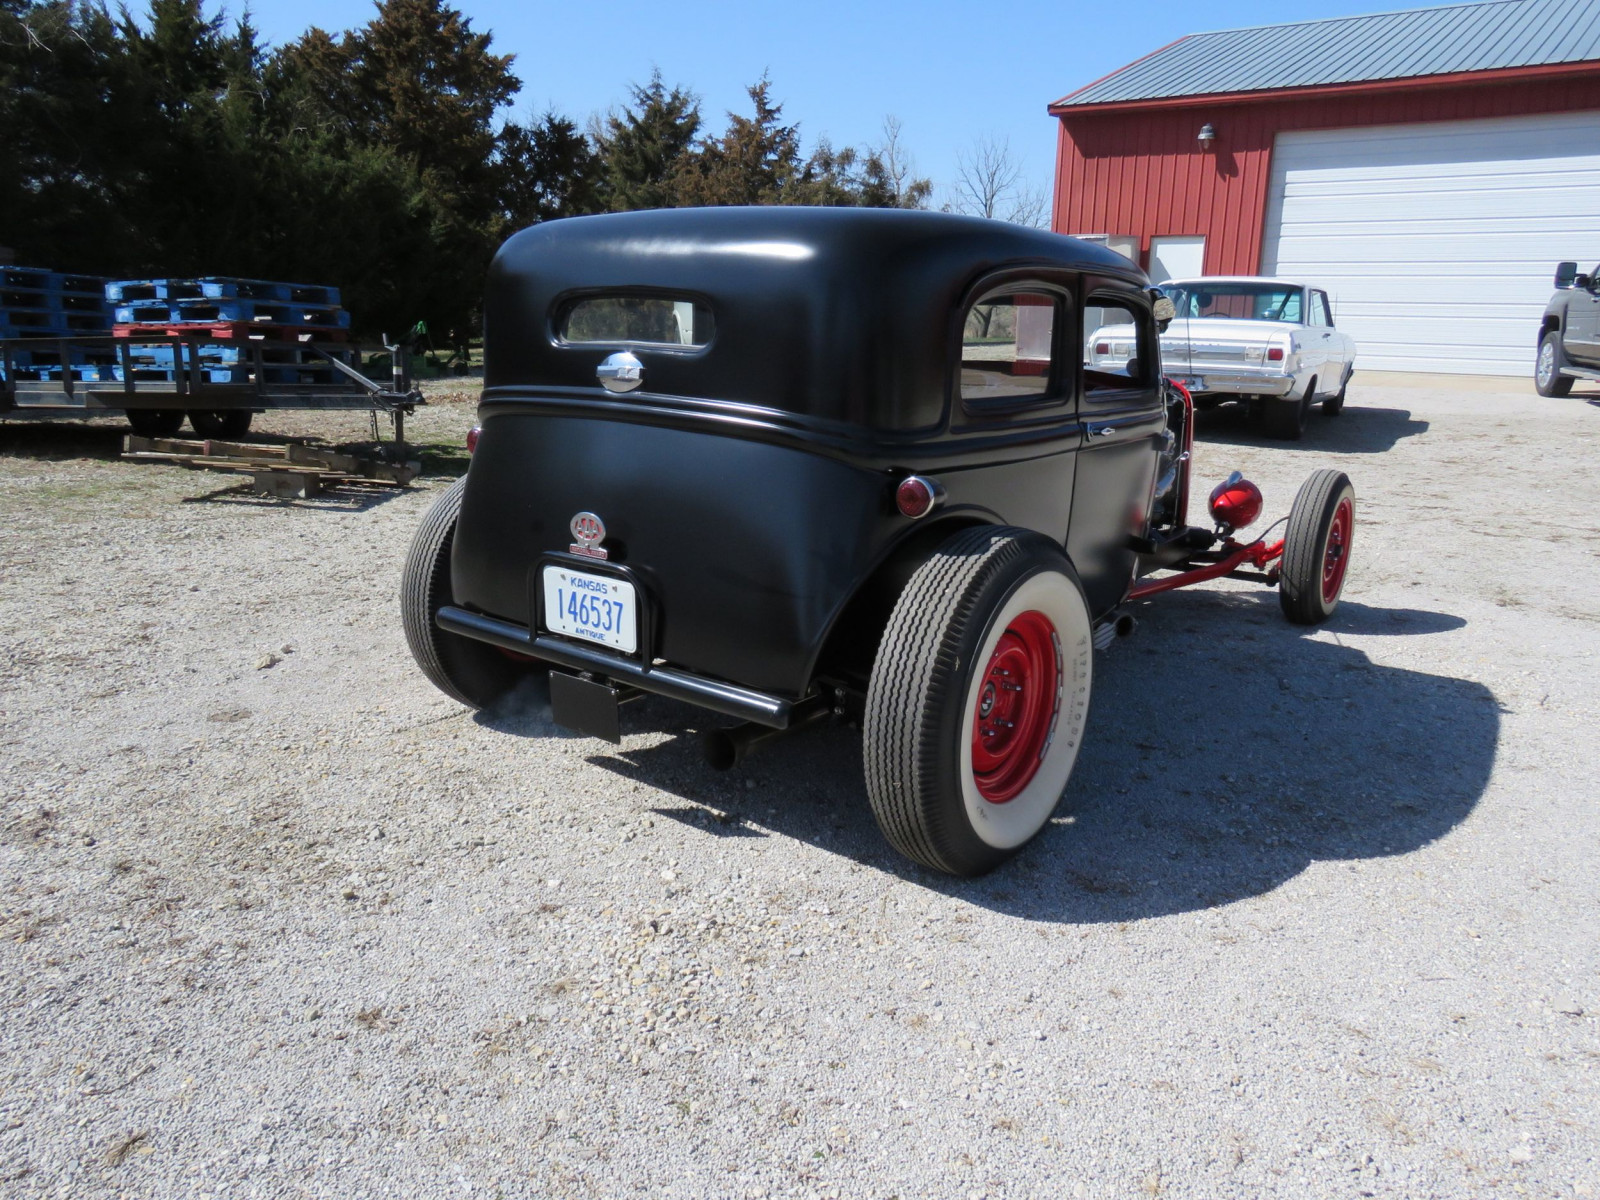 1929 Ford 23dr Sedan Custom Hot Rod - Image 6